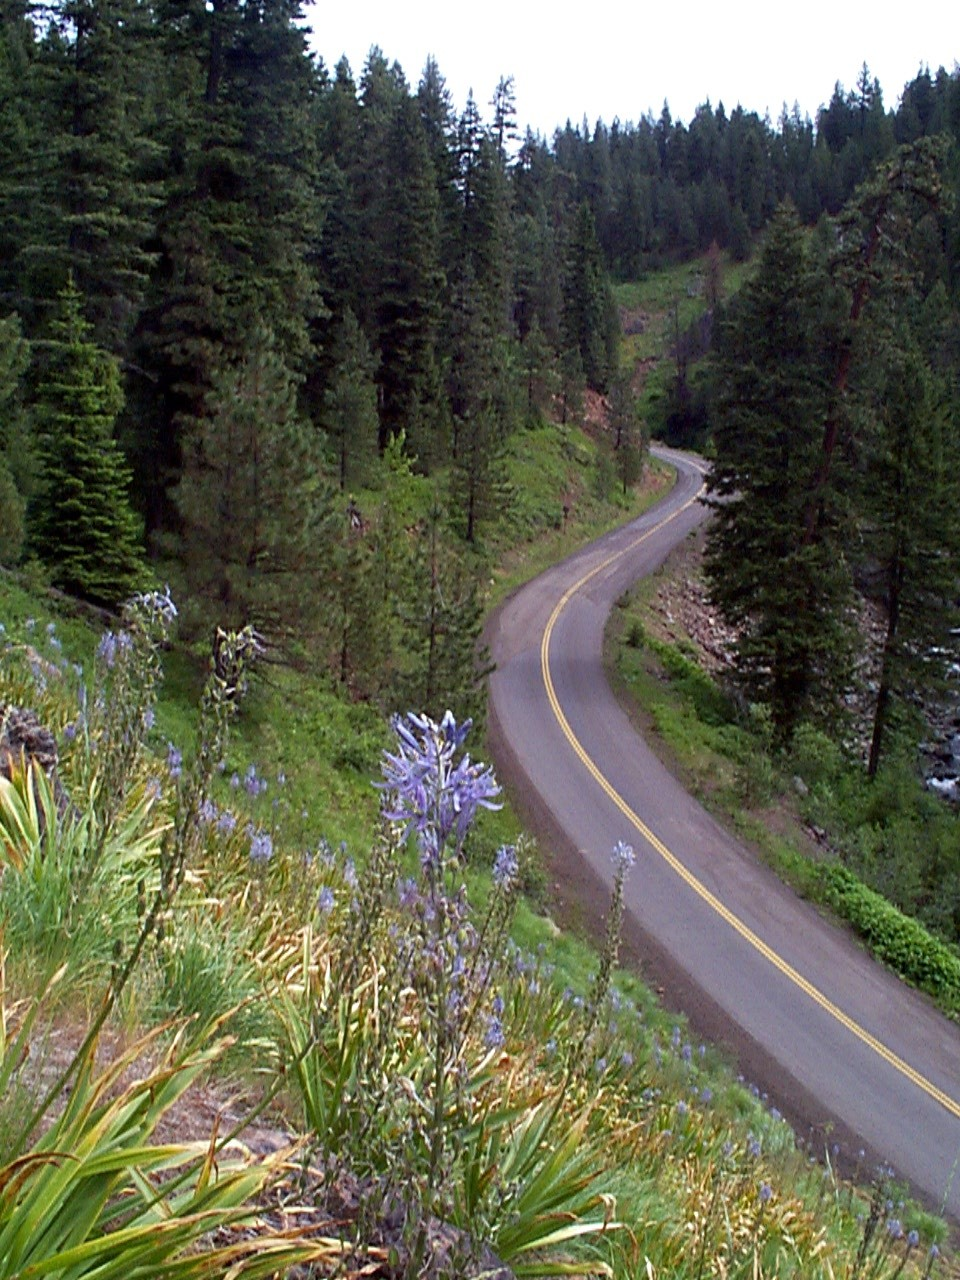 Forest Road 39 on the Hells Canyon Byway with blue camas flowers in foreground